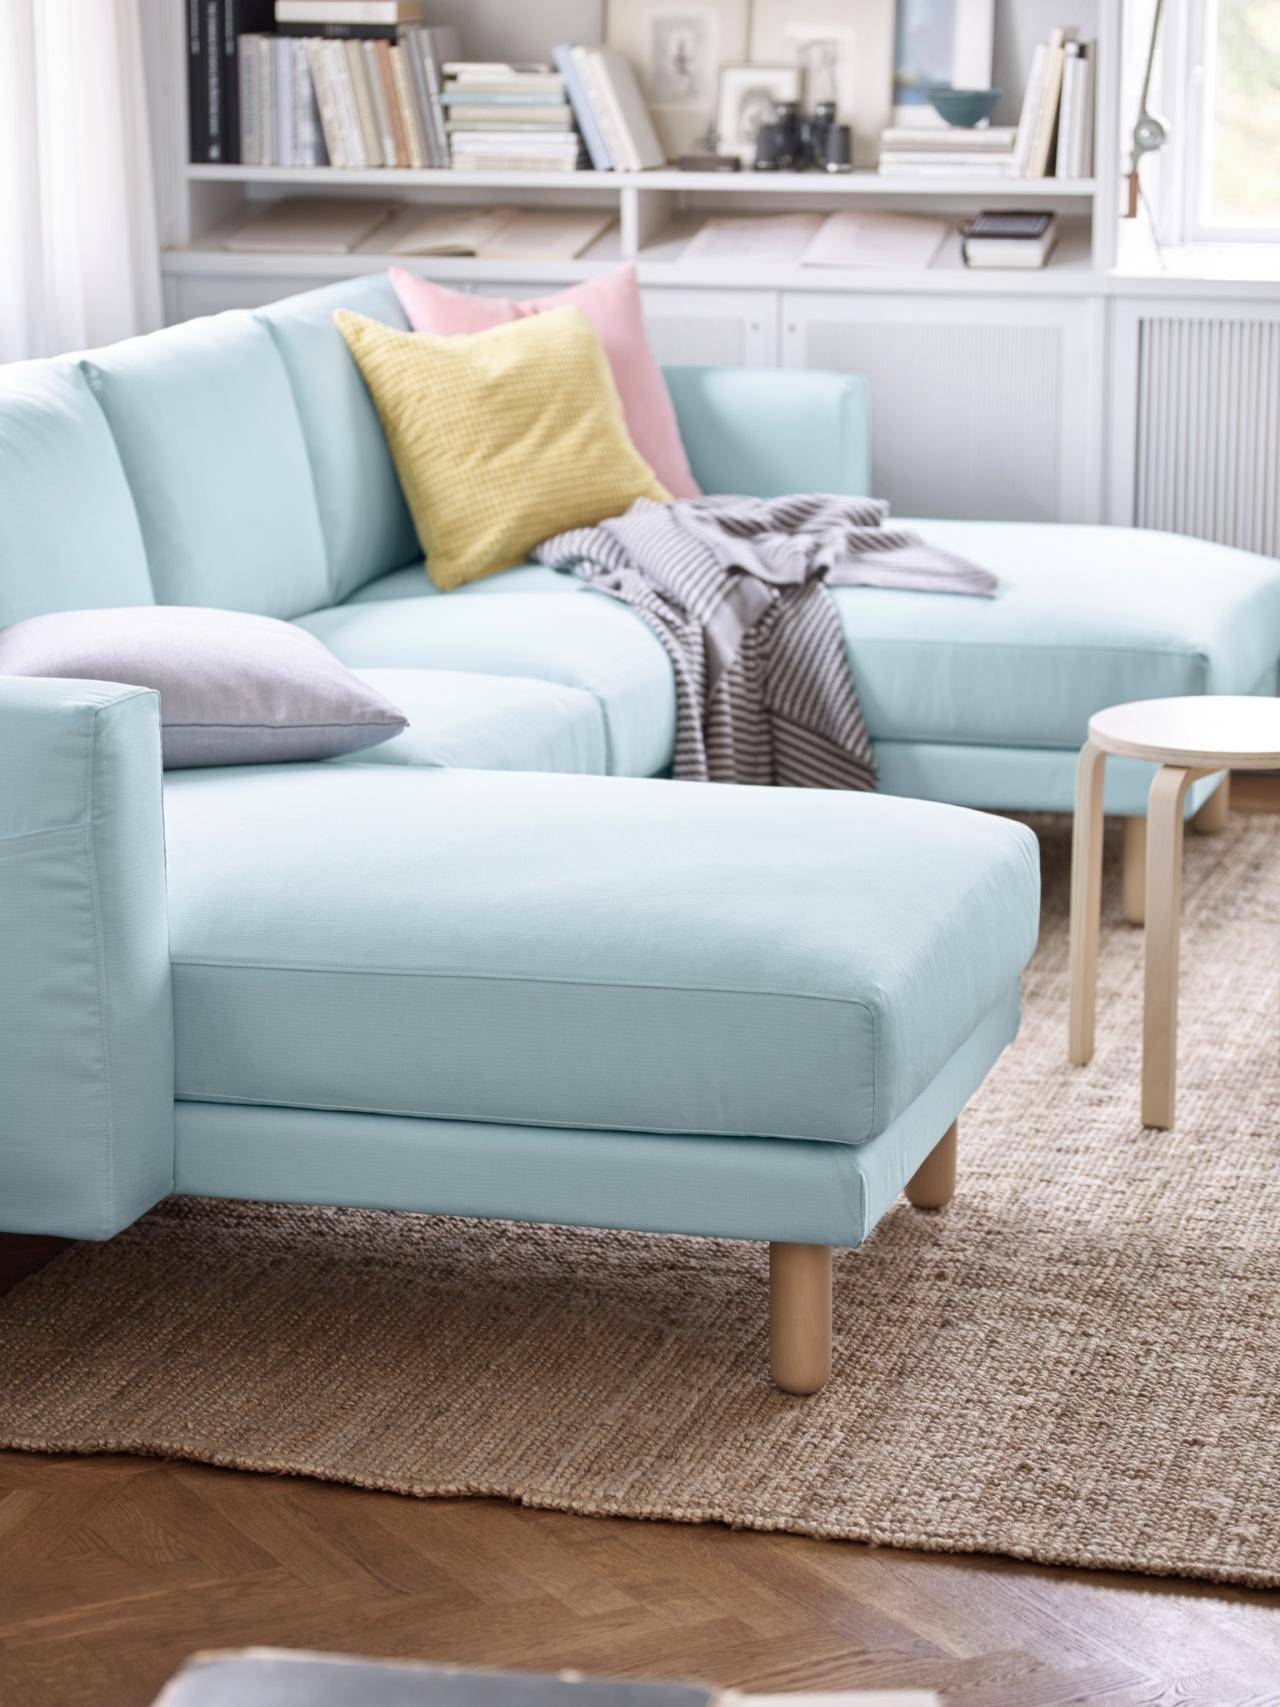 5 Apartment Sized Sofas That Are Lifesavers | Hgtv's Decorating Inside Narrow Depth Sofas (Photo 15 of 15)